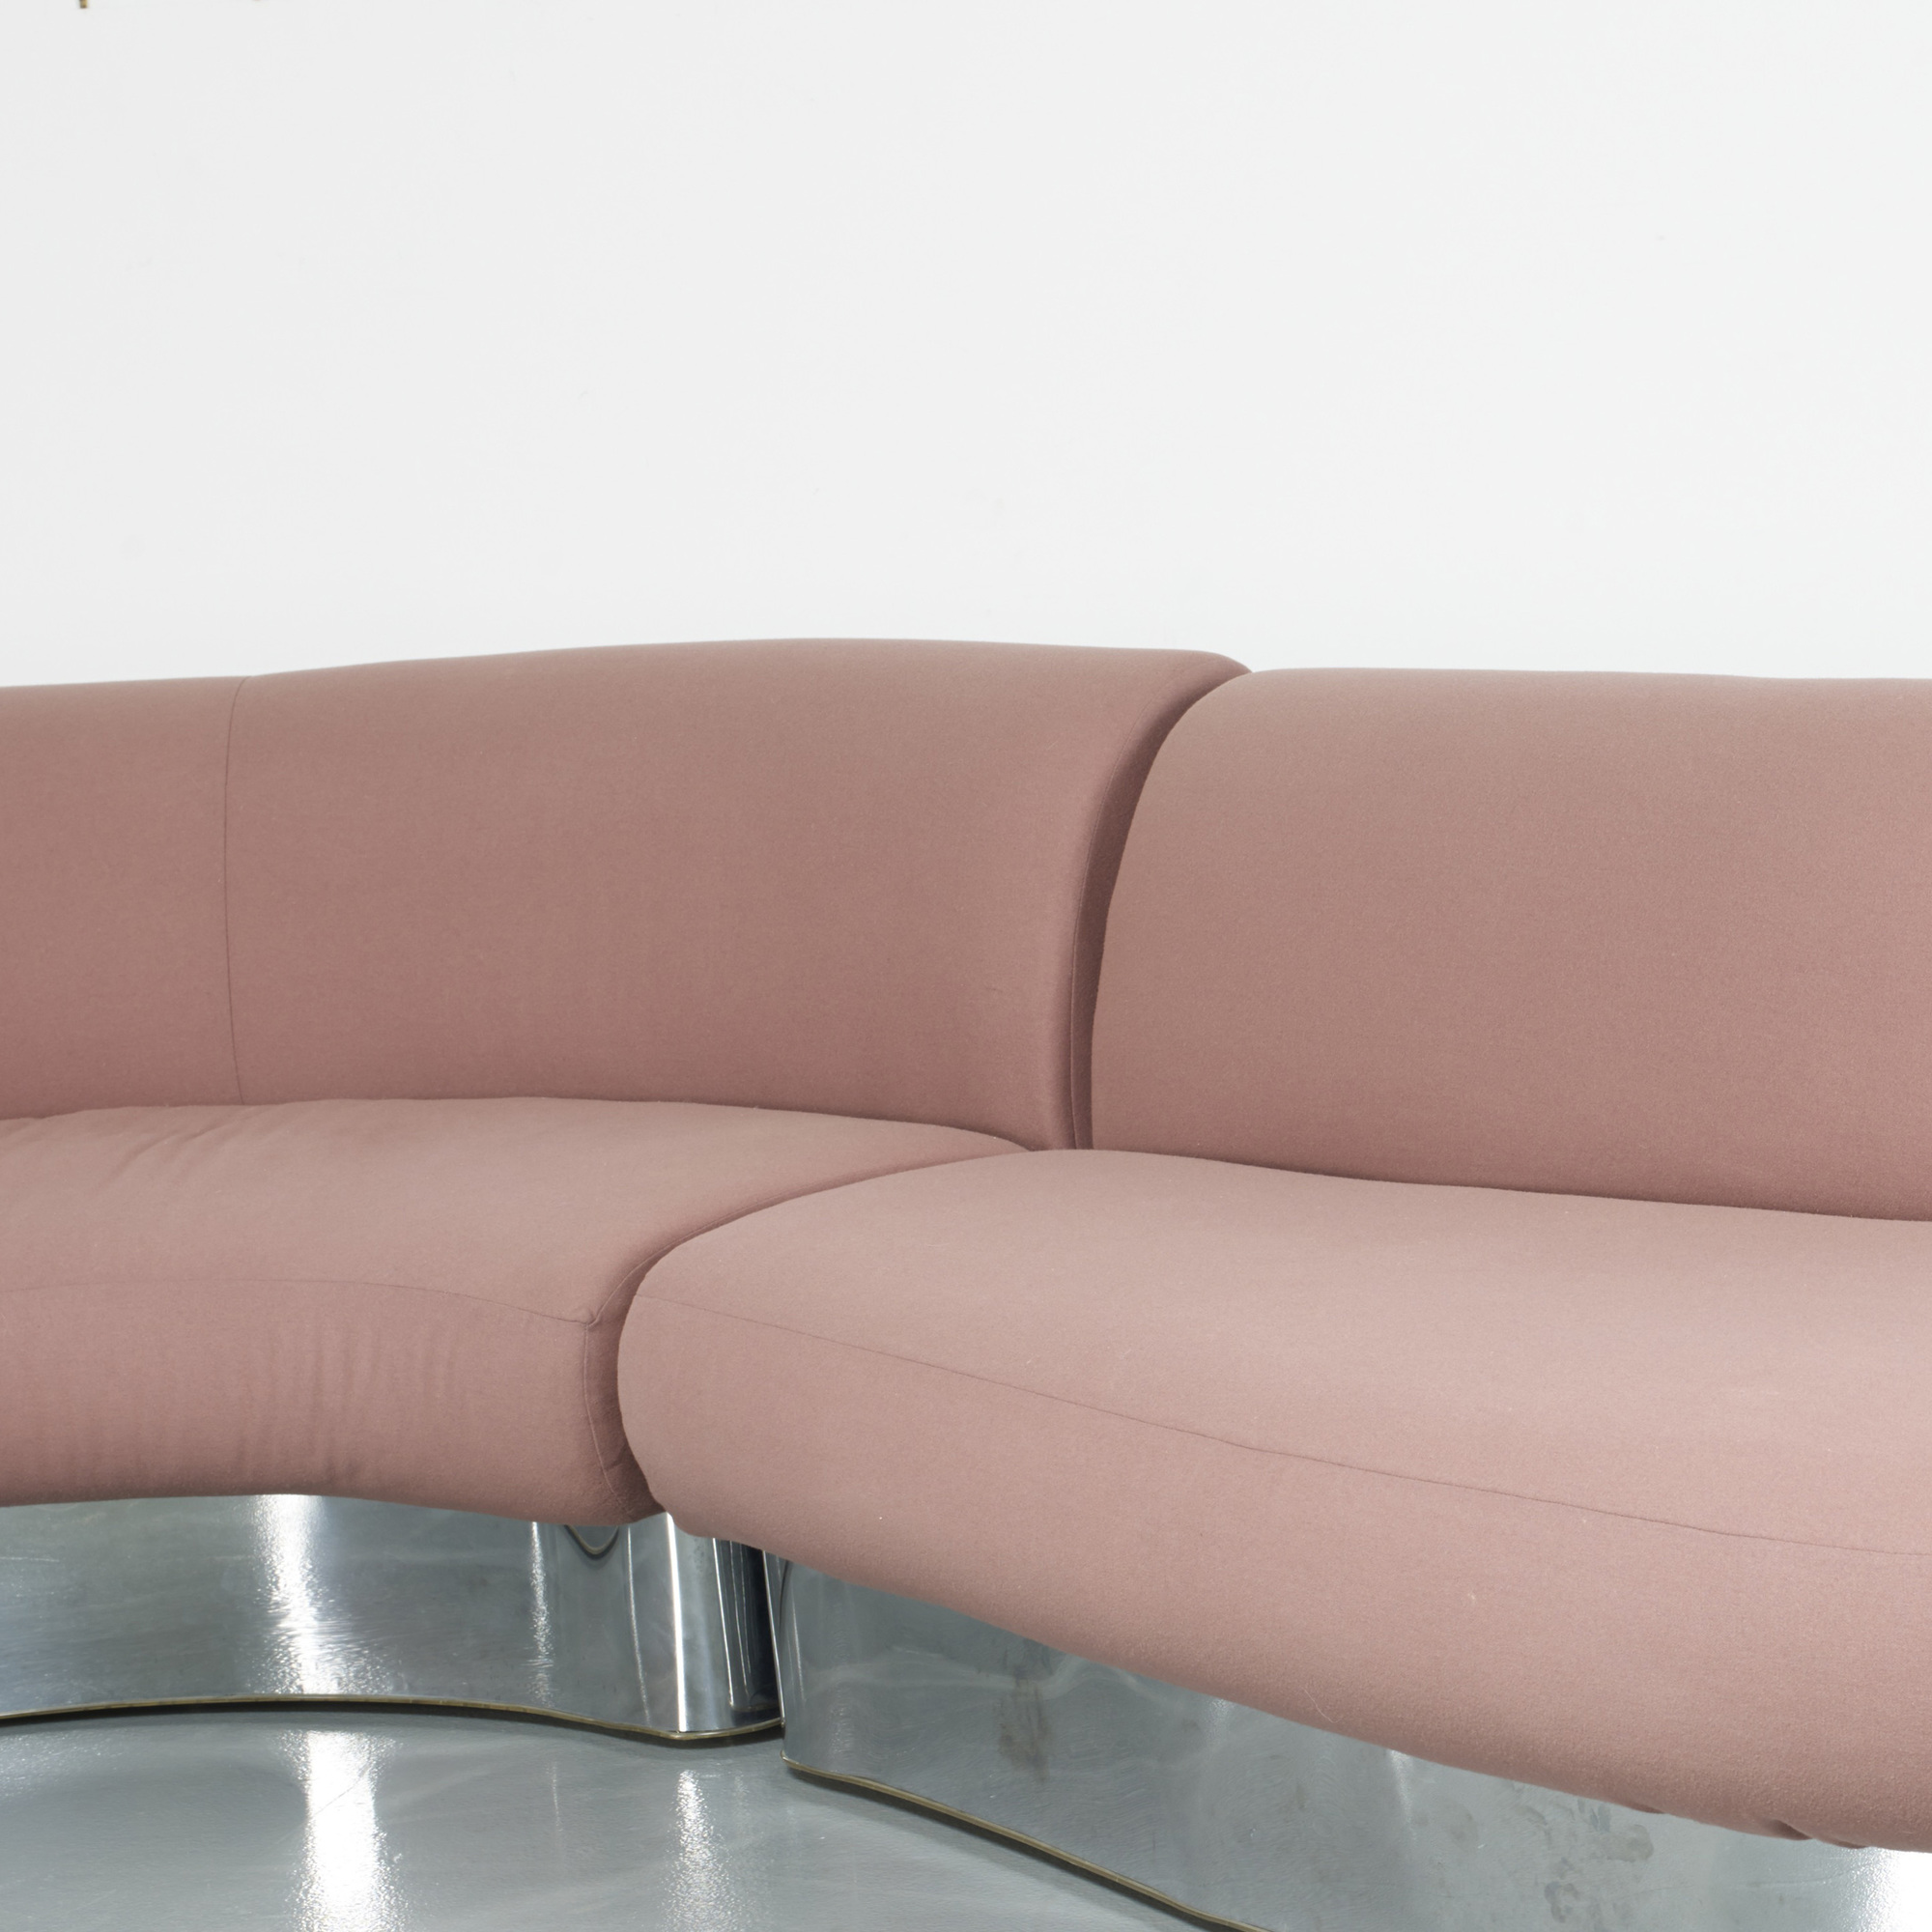 308: Milo Baughman / sectional sofa (2 of 3)